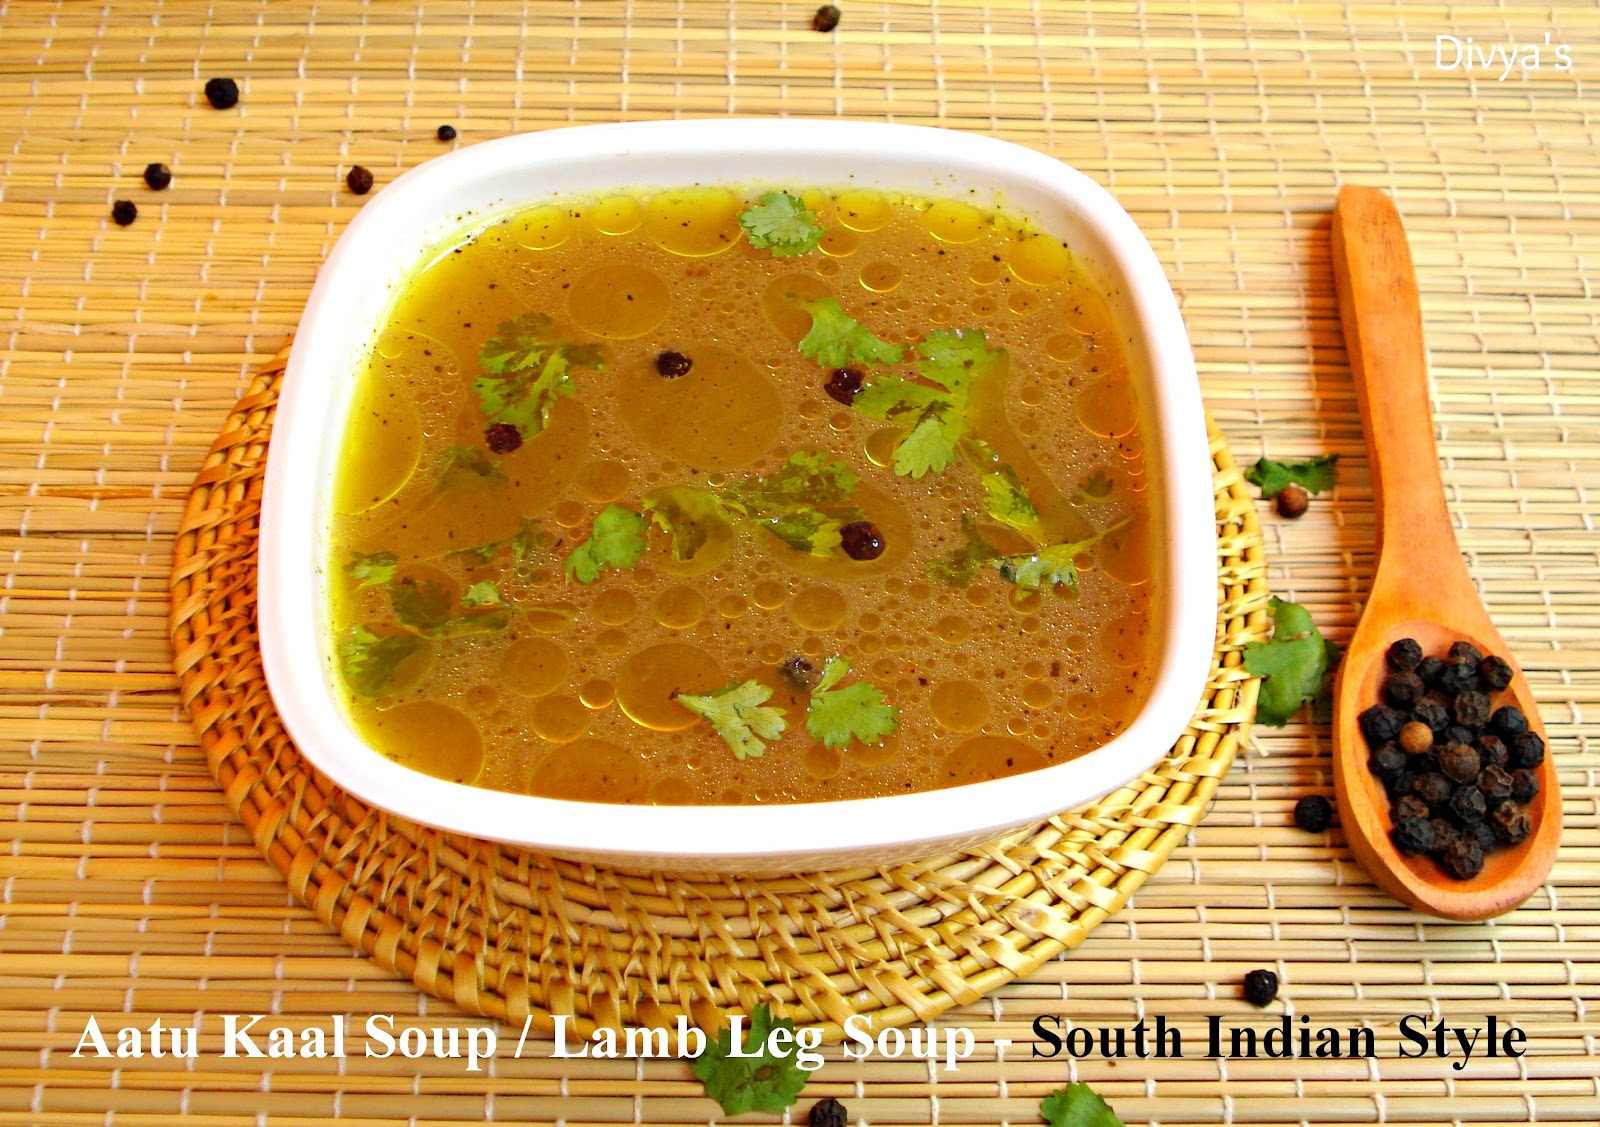 Non veg soup recipes in tamil pdf google easy food recipes non veg soup recipes in tamil pdf google forumfinder Images